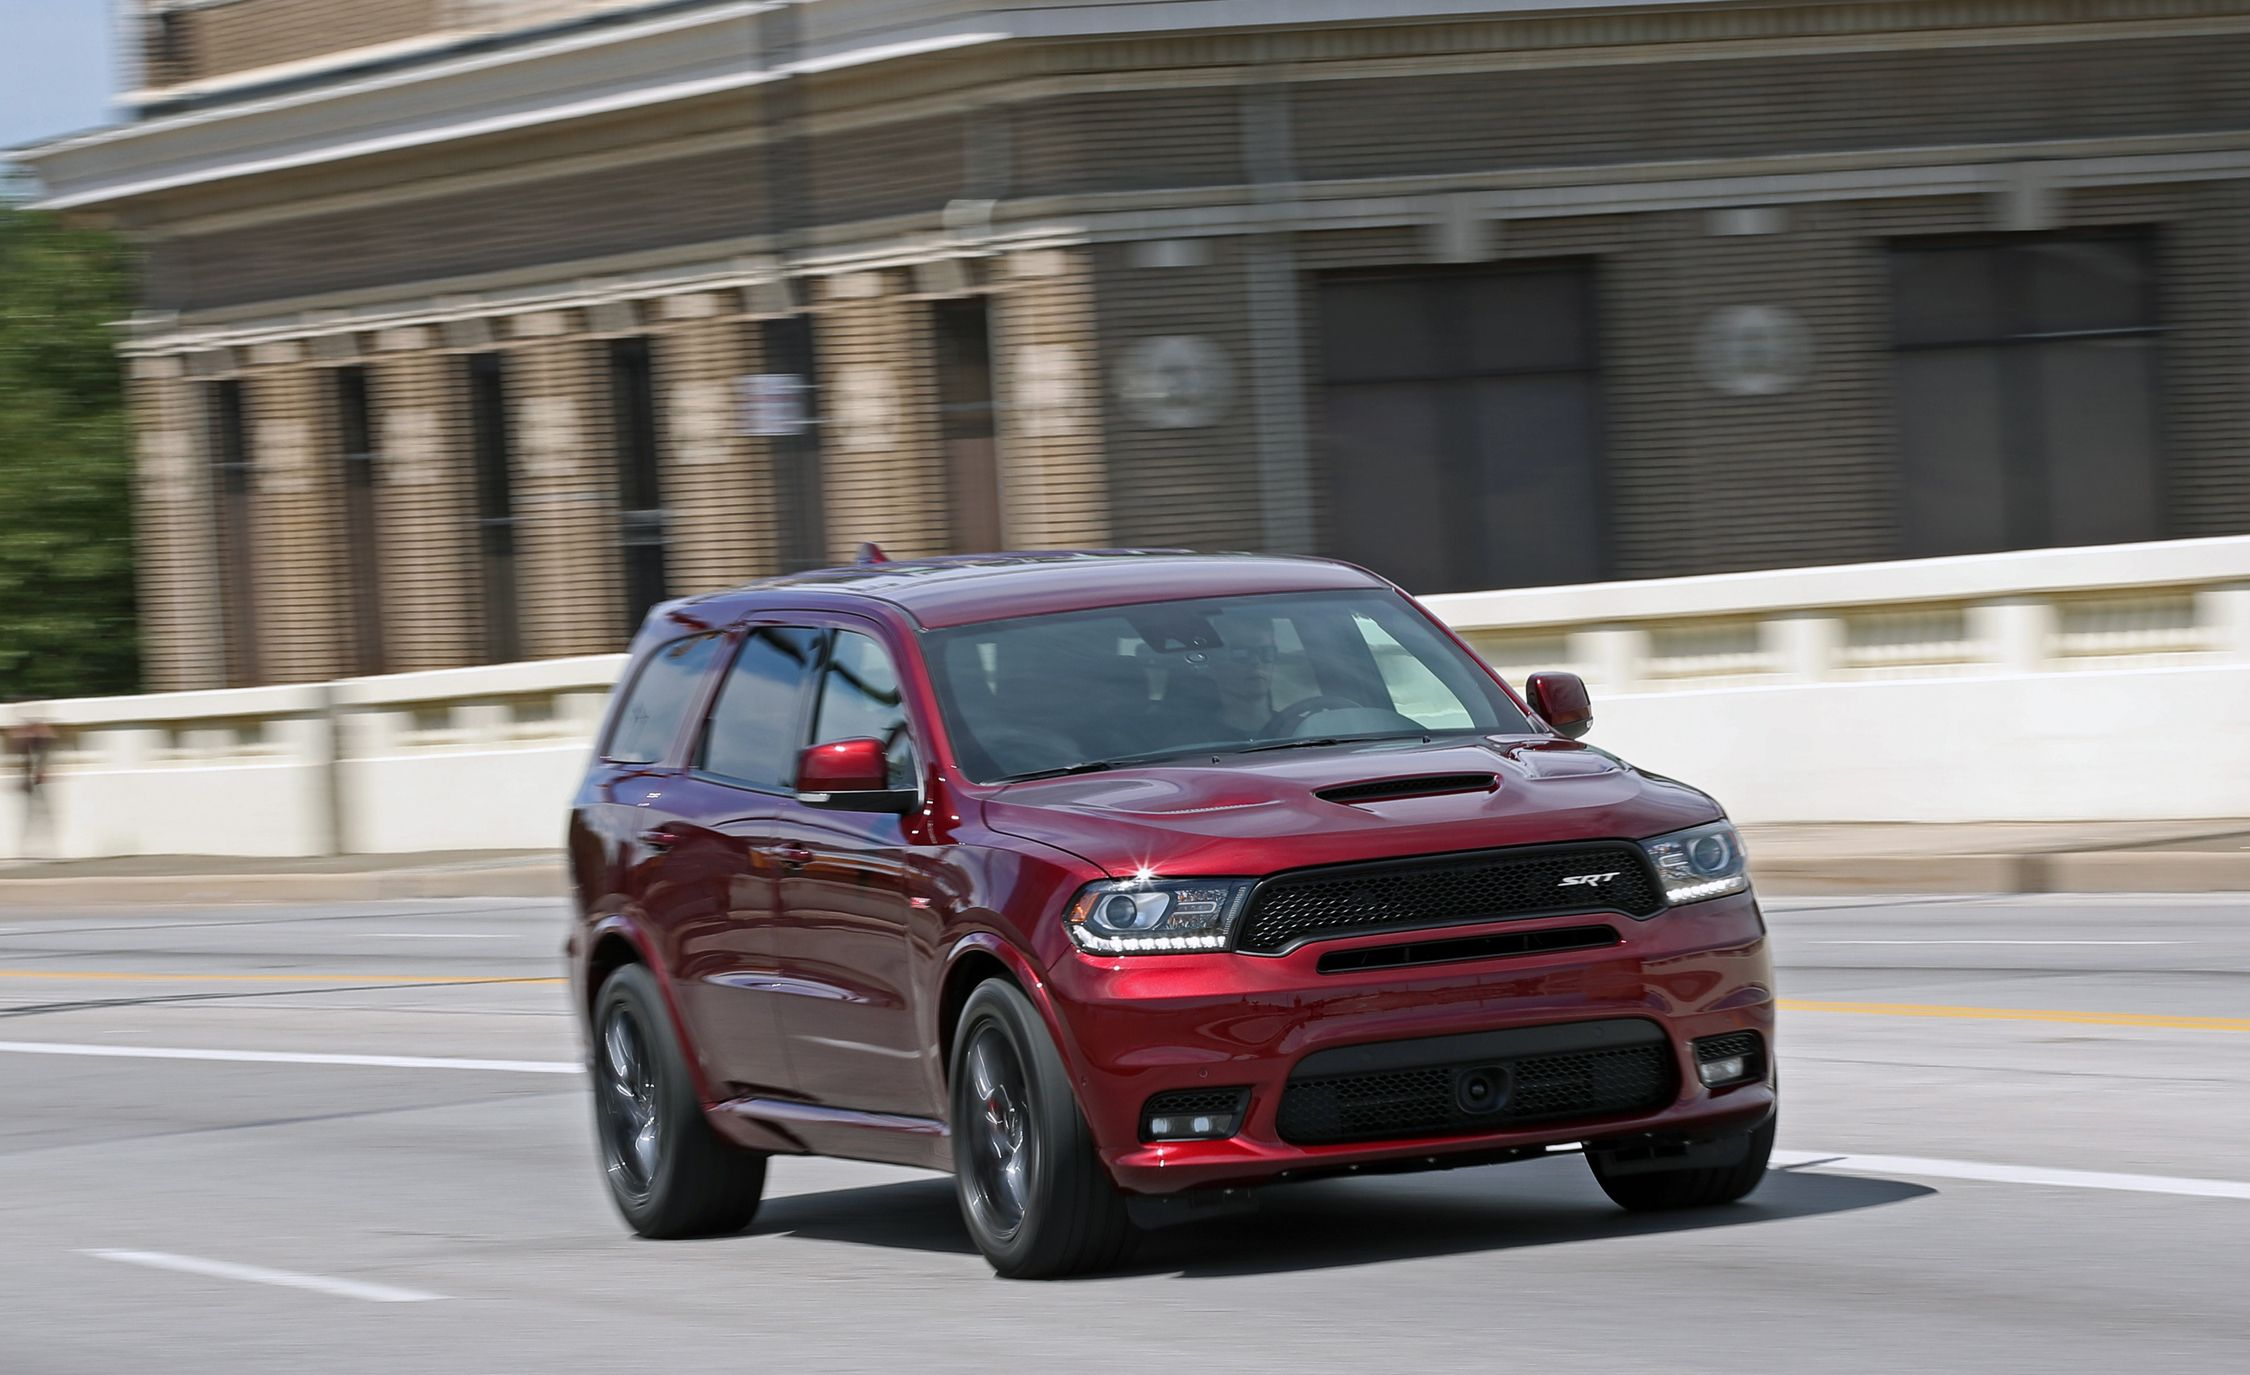 2018 Dodge Durango SRT   Uconnect Audio and Infotainment Review   Car and Driver